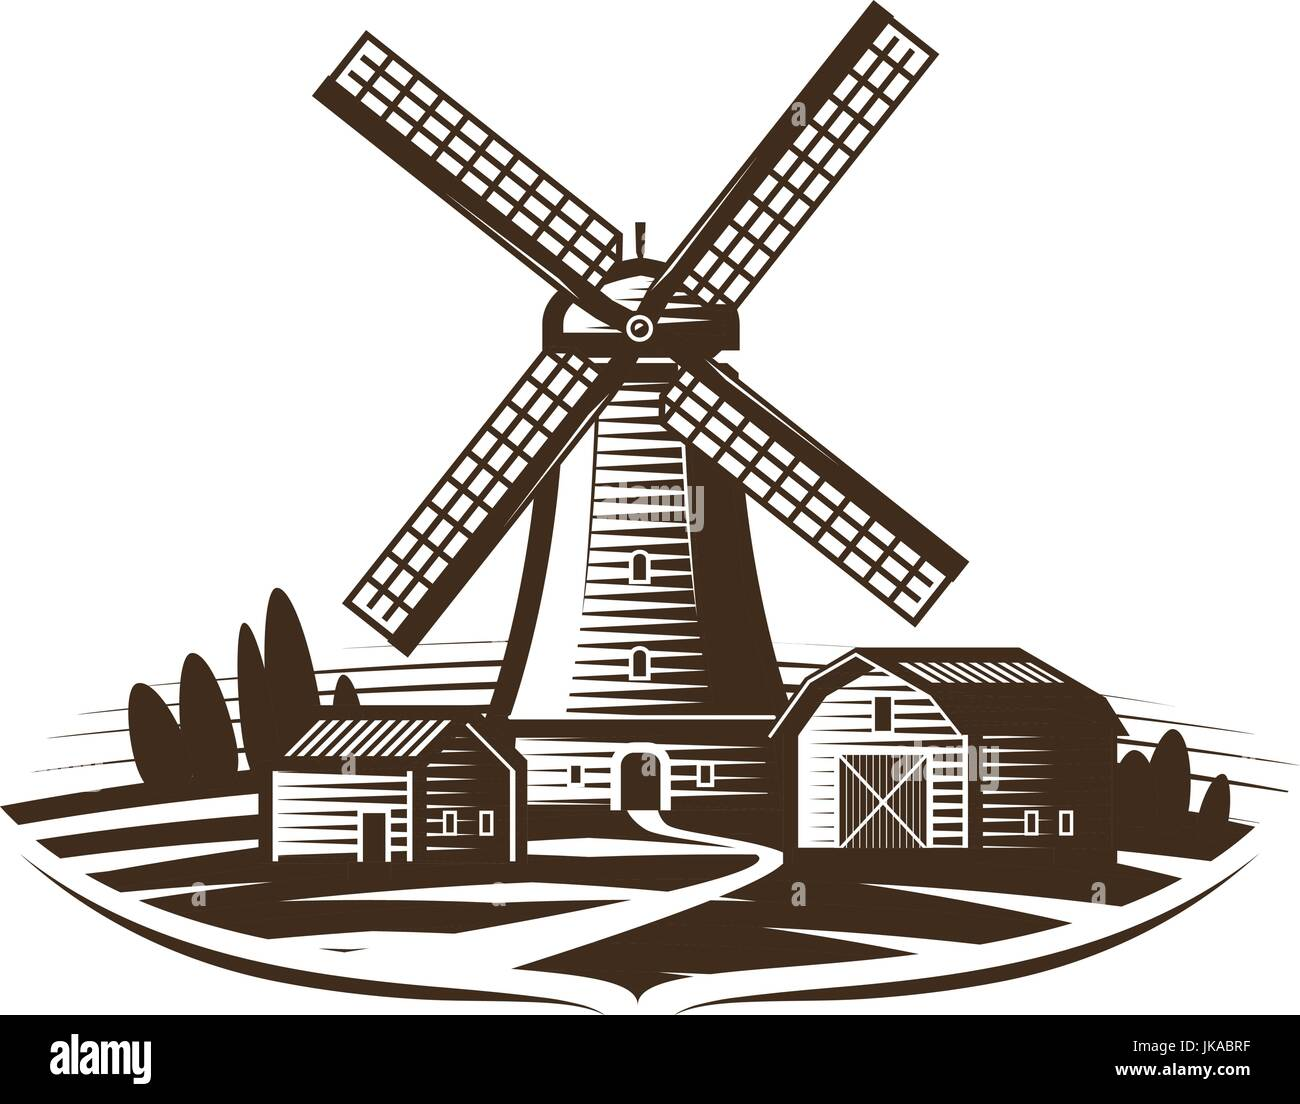 Windmill, mill logo or label. Farm, rural landscape, agriculture, bakery, bread icon. Vintage vector illustration - Stock Vector